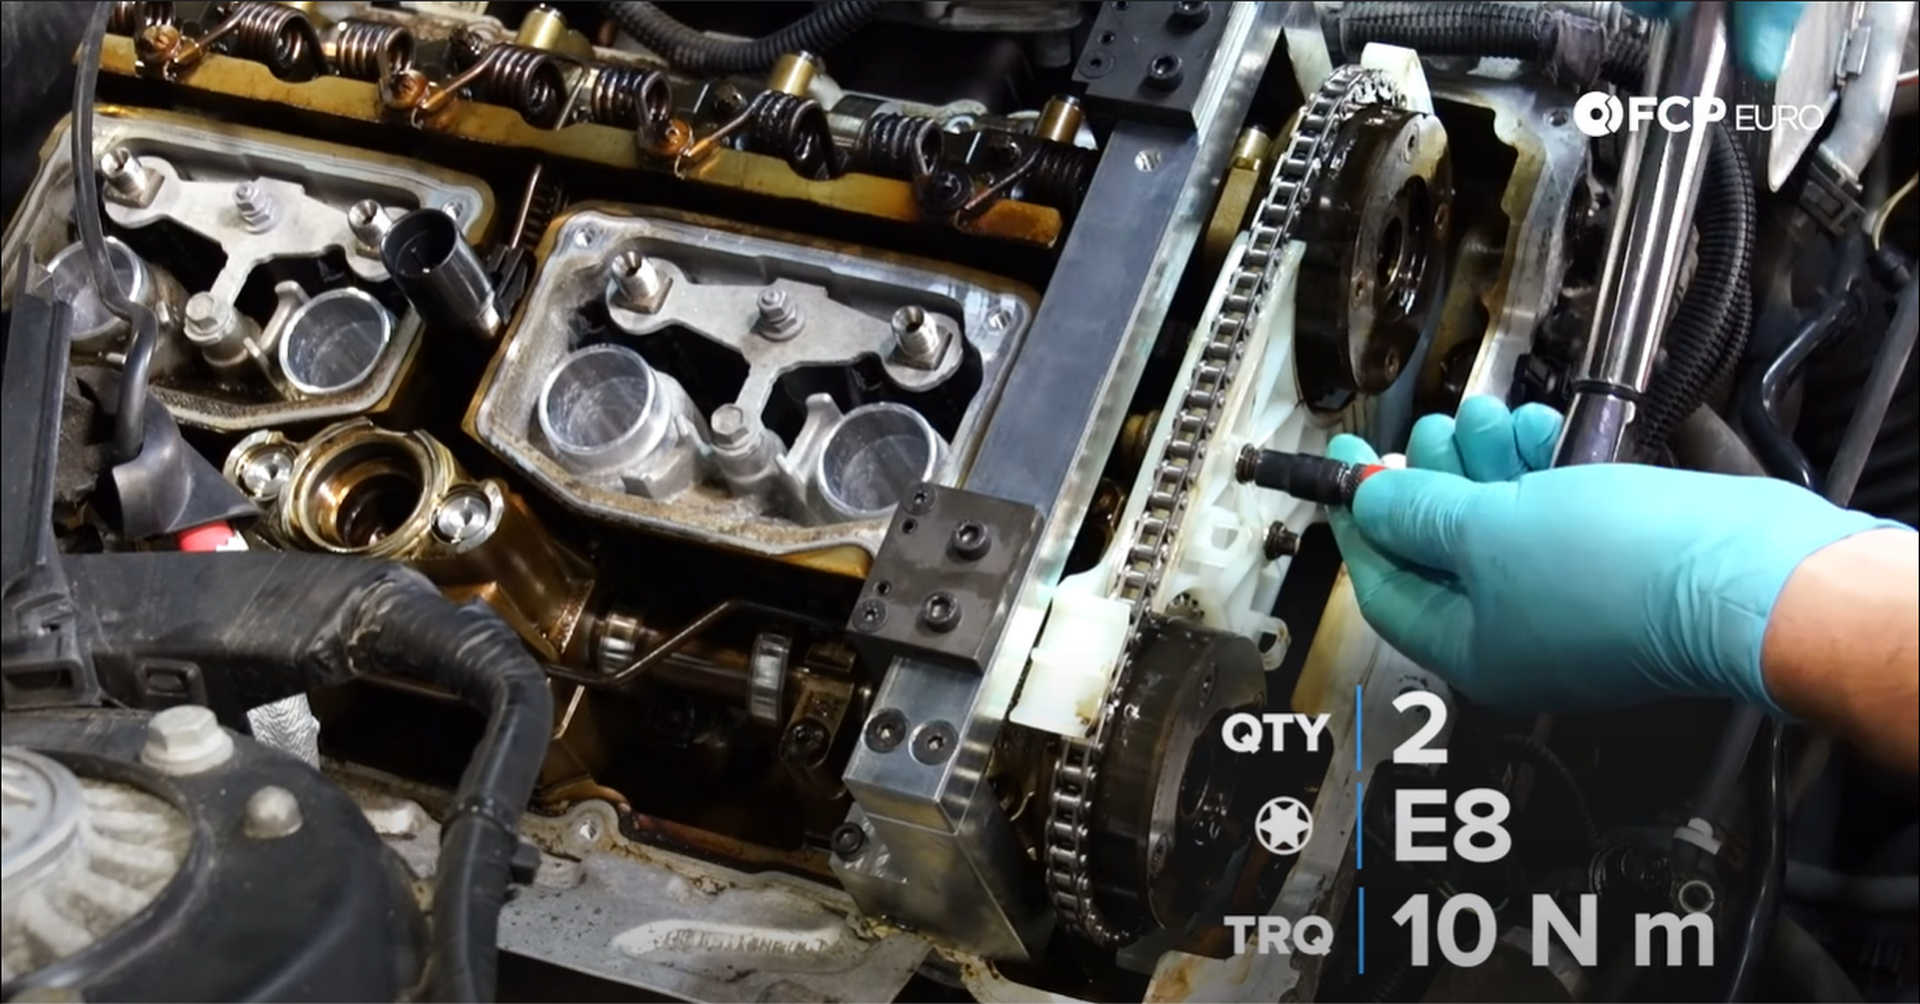 DIY BMW N20 Timing Chain Tightening the chain guide bolts